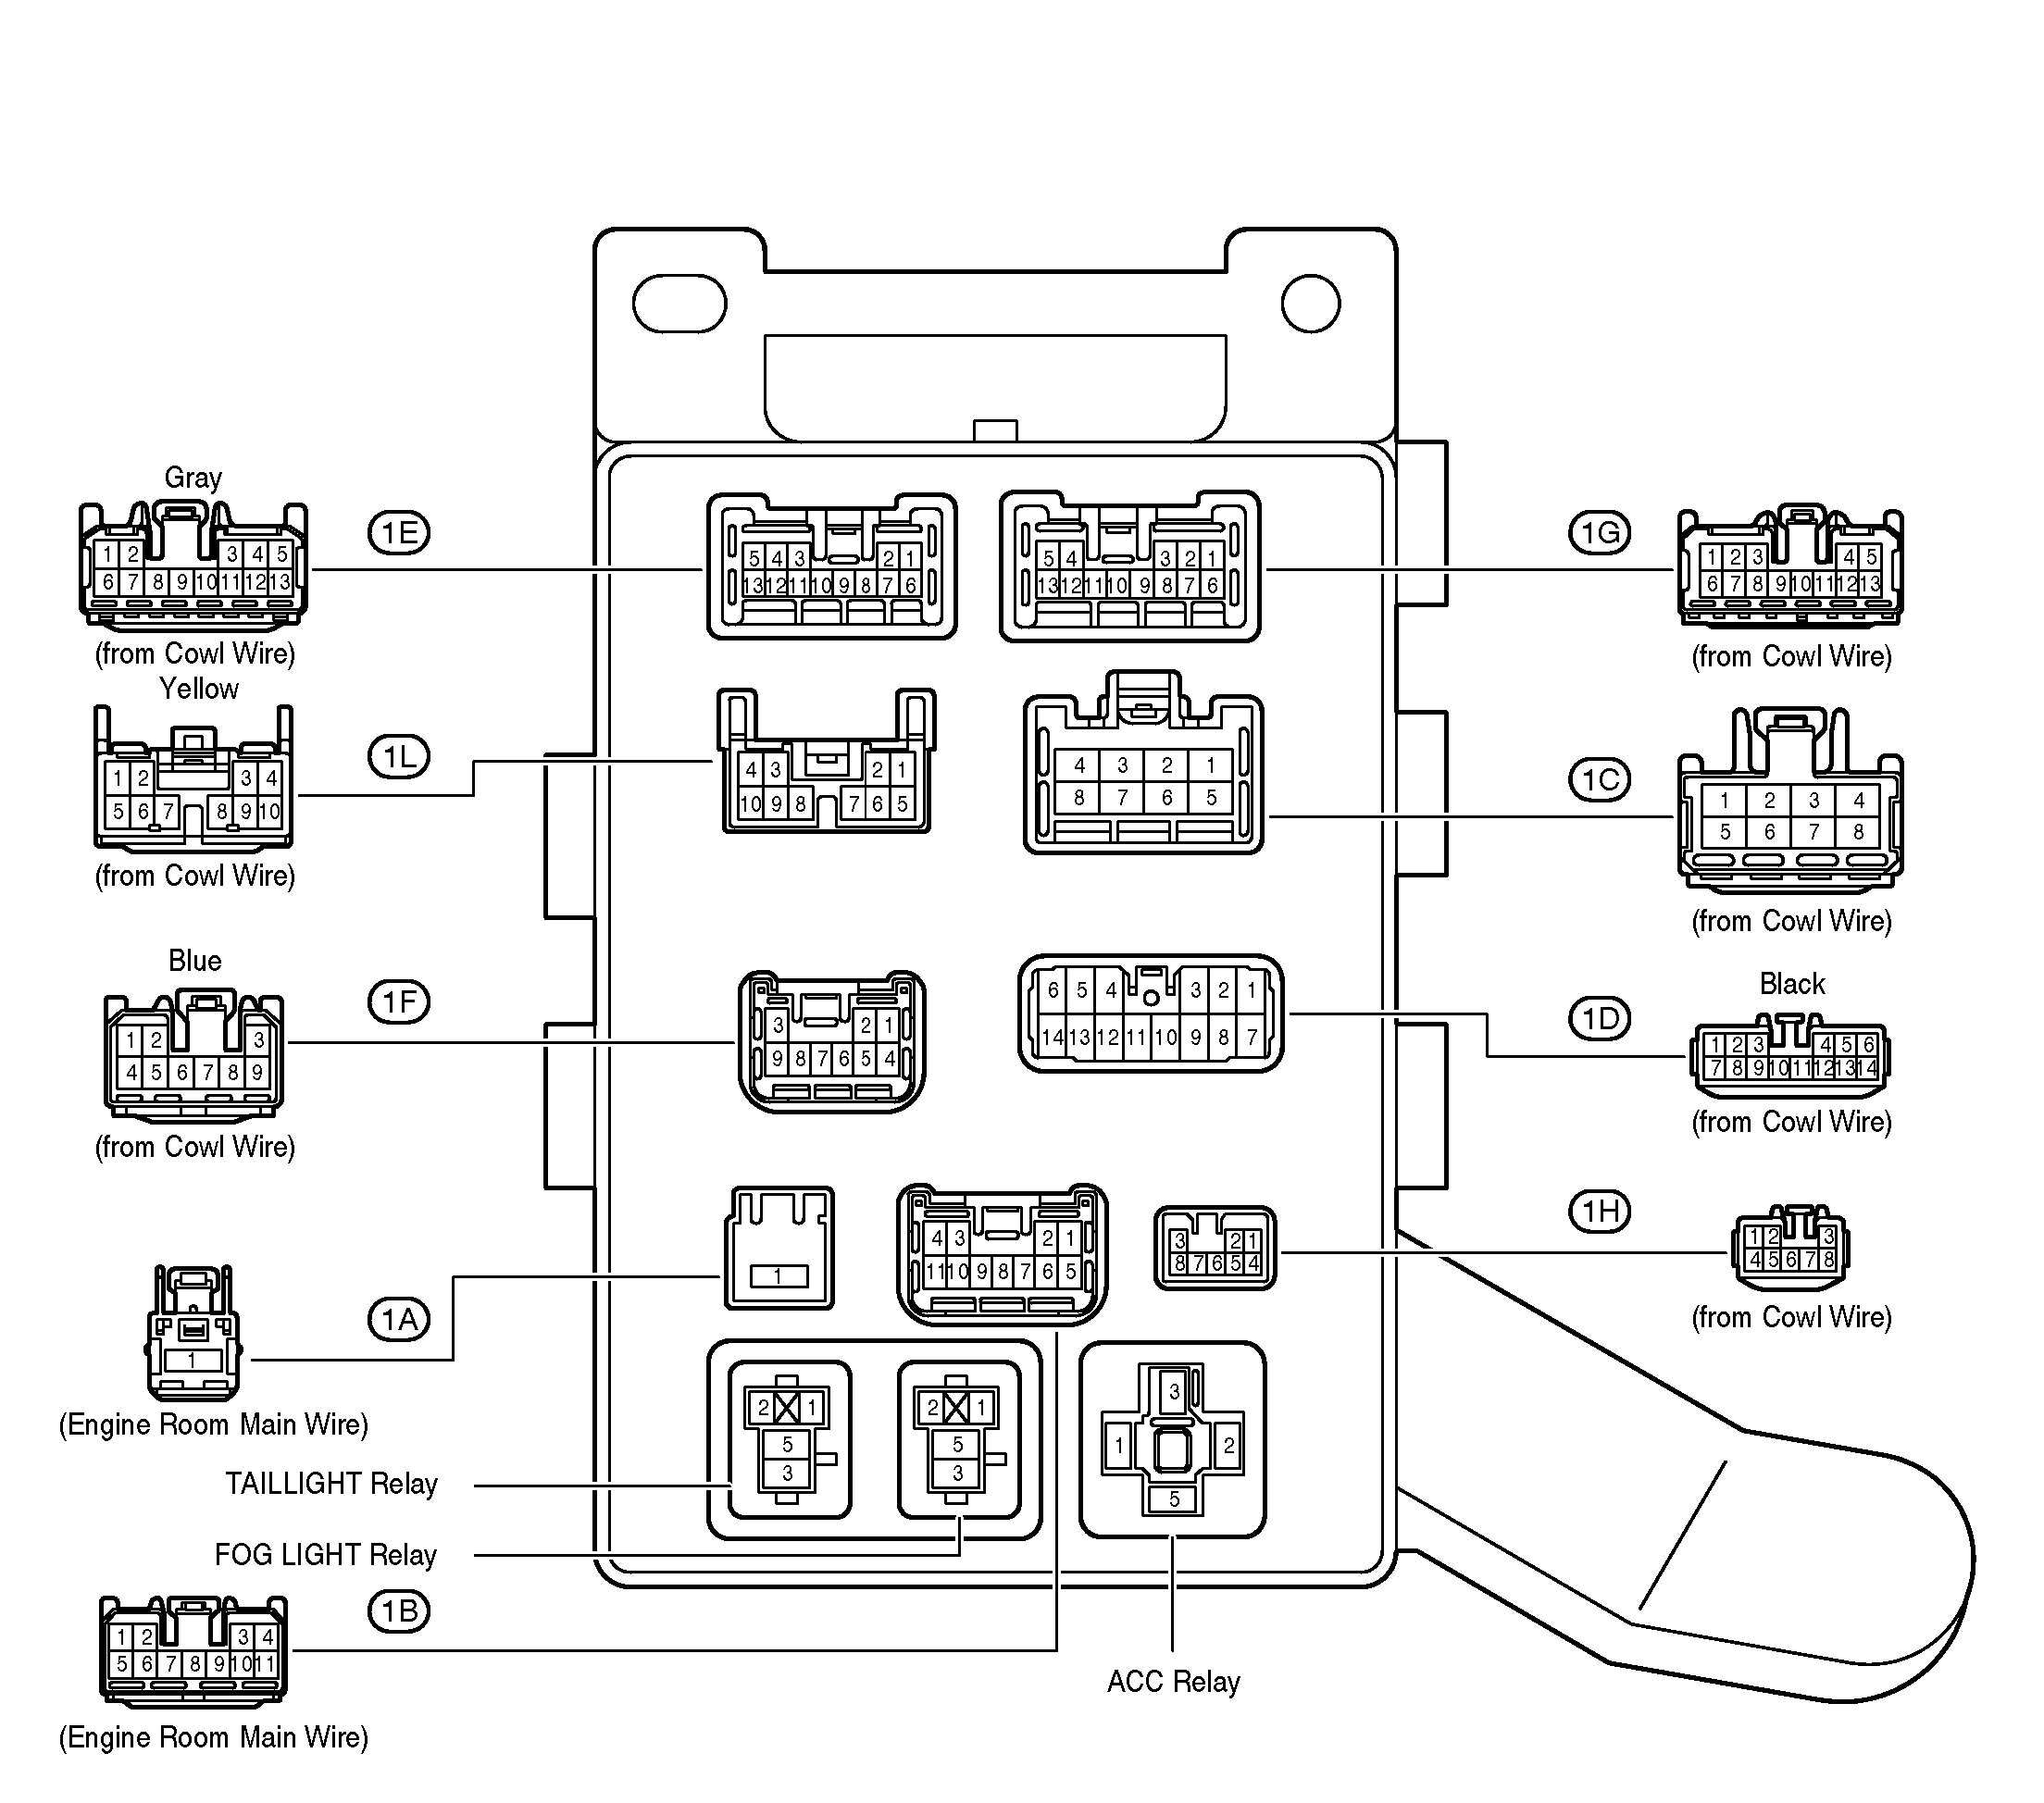 Relay Wiring Diagram As Well Fog Light Relay Wiring Diagram On Wiring